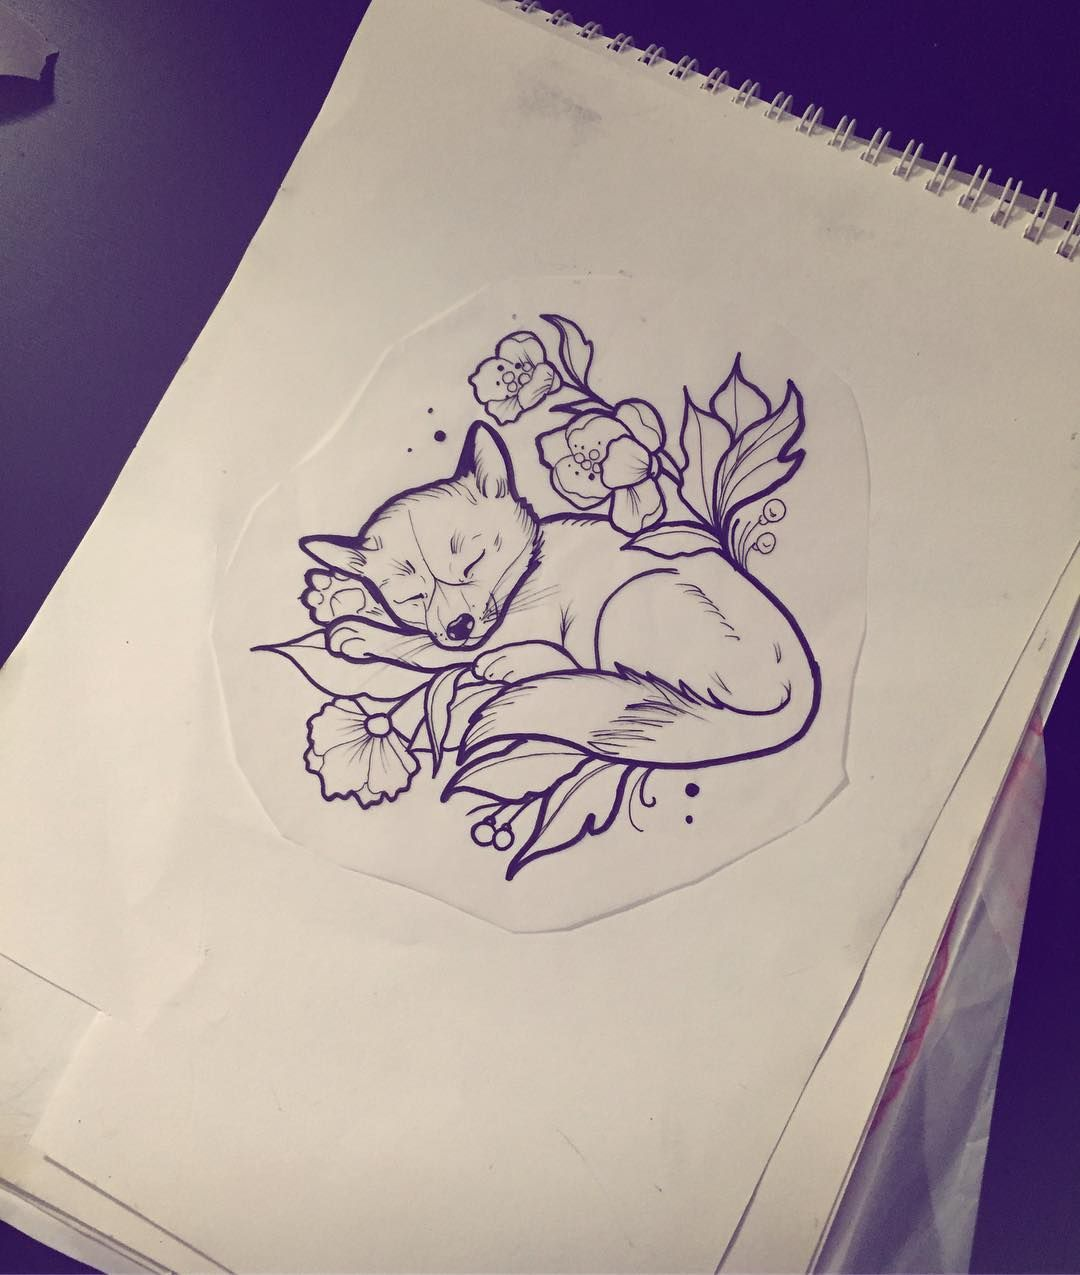 "Ann-Marie Instagram 🍕 👽🍹 🎨 auf Instagram: ""Für morgen 🦊❤ #tattoodesign #tattoo #ink #inked #fox #foxtattoo # friedatätowierungs #sketch #drawing #illustration # Outline…""   – Tattoos"